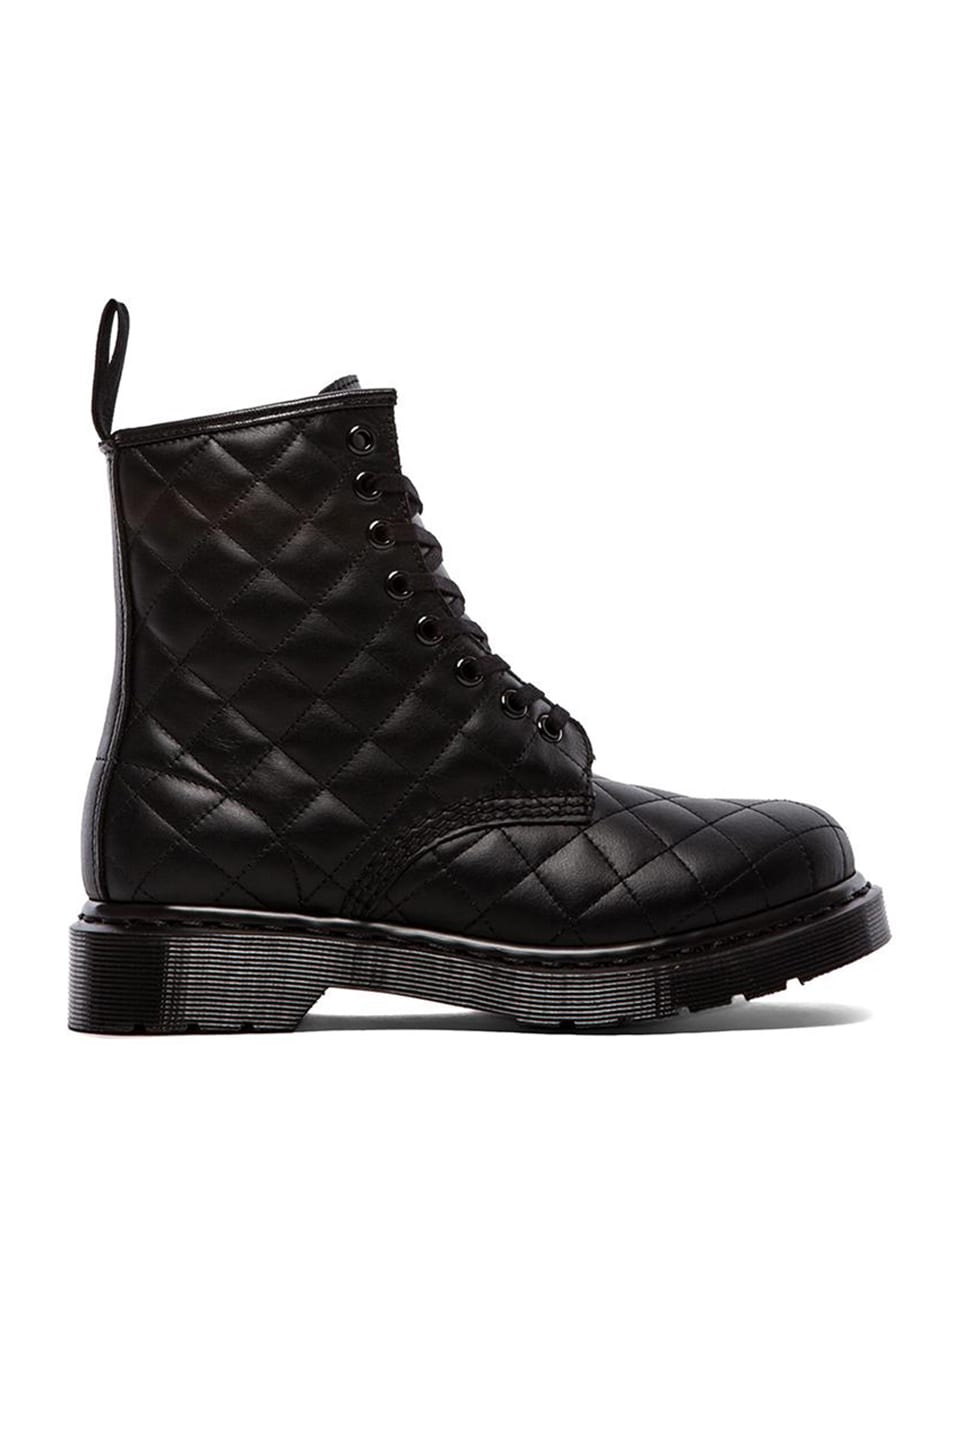 Dr. Martens Coralie Quilted 8-Eye Boot in Black